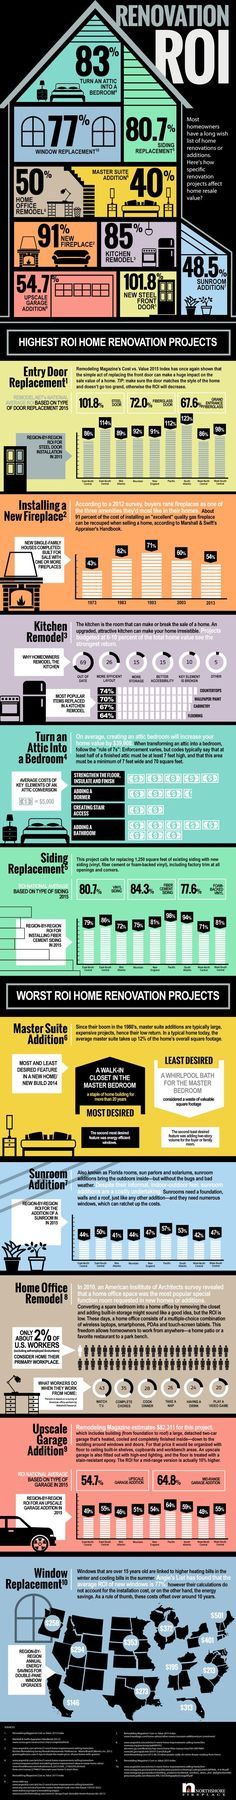 If you're thinking about a home renovation, check this out to see what your return on investment might be!